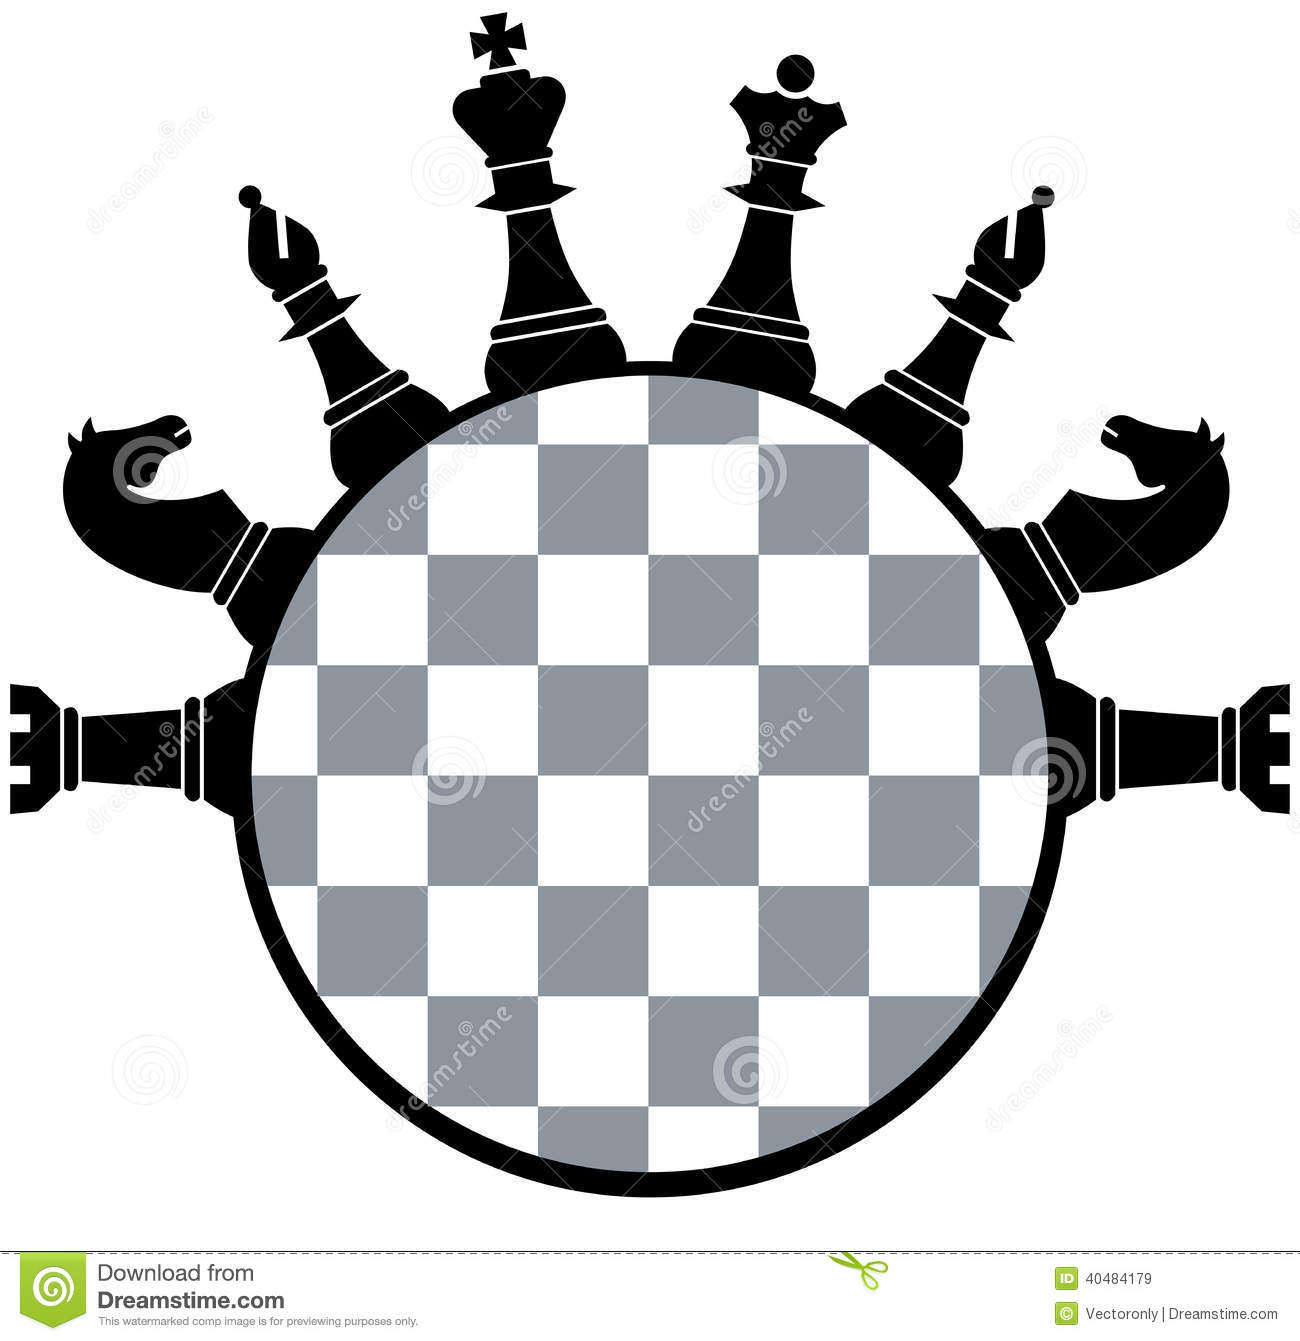 free illustration chessboard render - photo #5